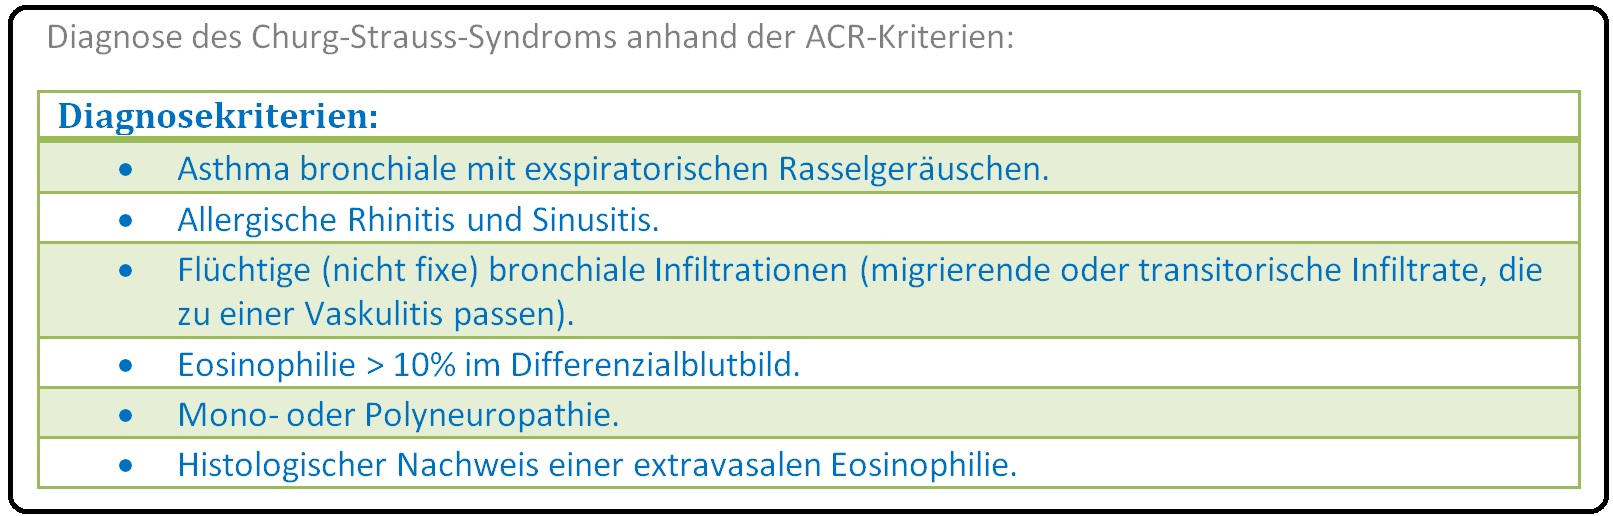 619 Diagnose des Churg Strauss Syndroms anhand der ACR Kriterien